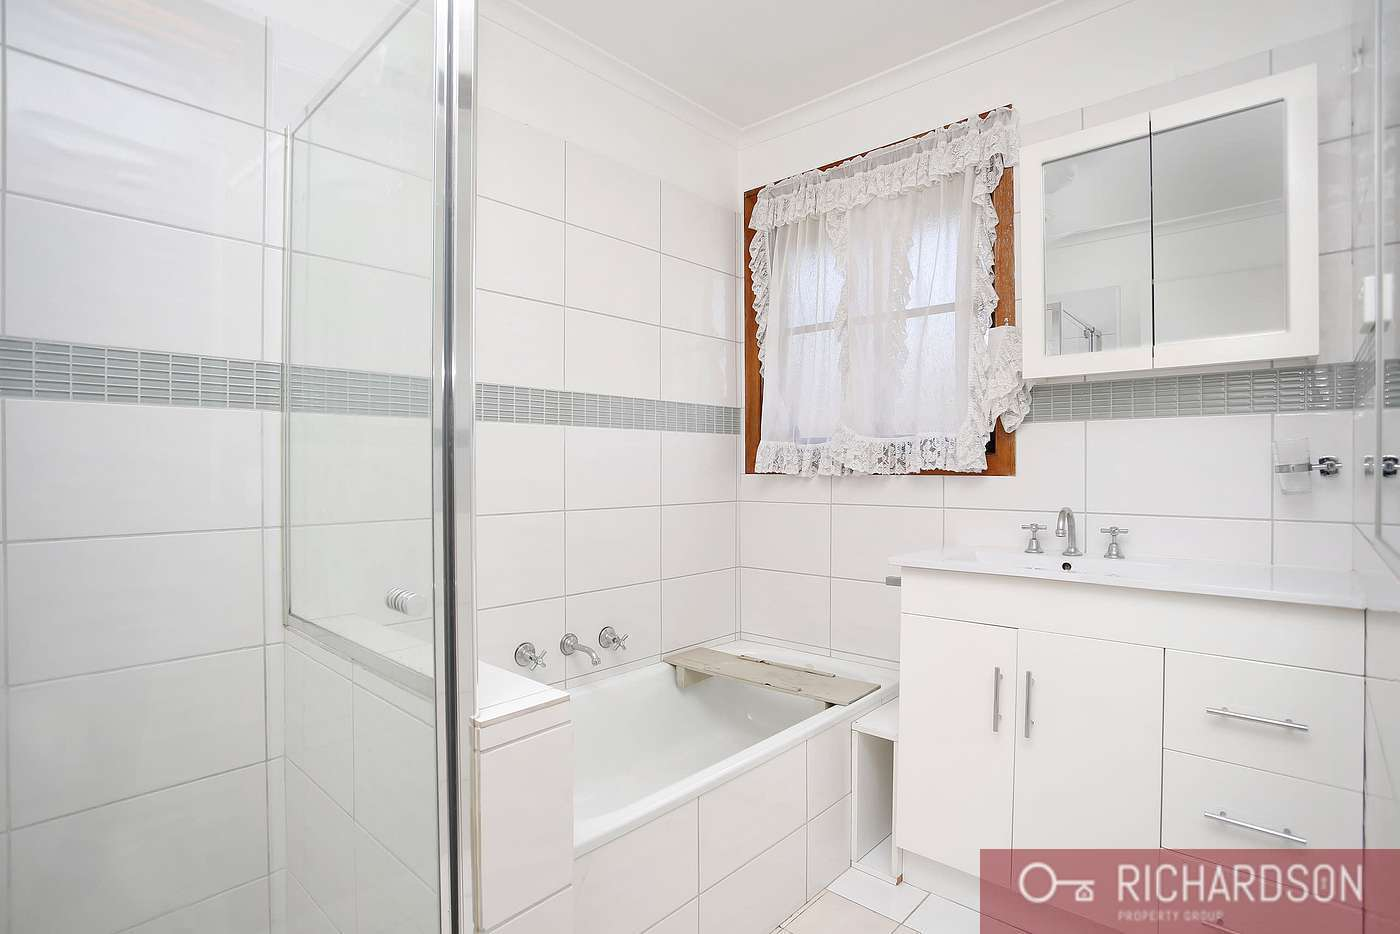 Sixth view of Homely house listing, 1 Elliot Court, Hoppers Crossing VIC 3029